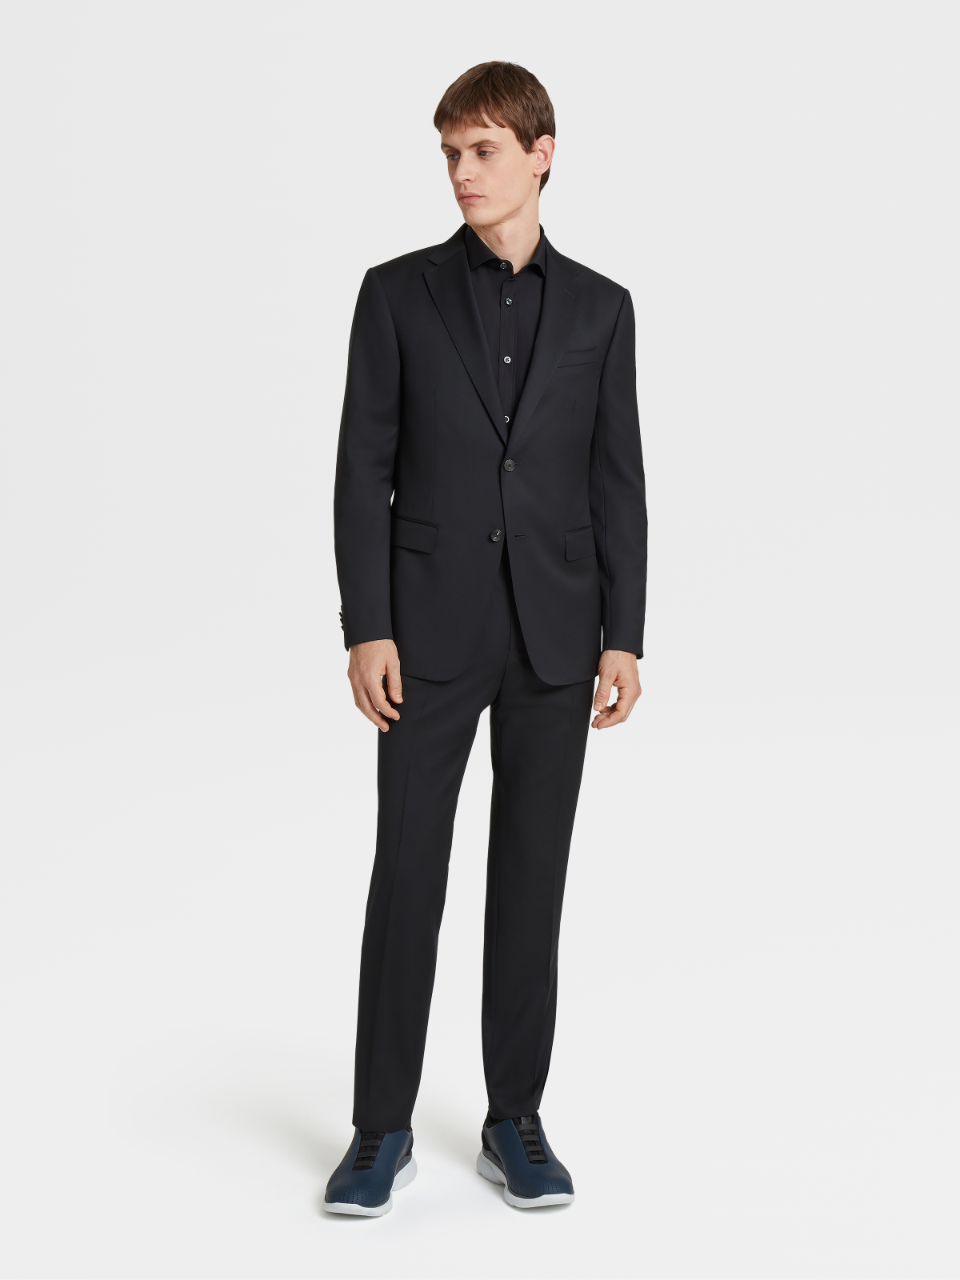 Black Pure Wool Suit